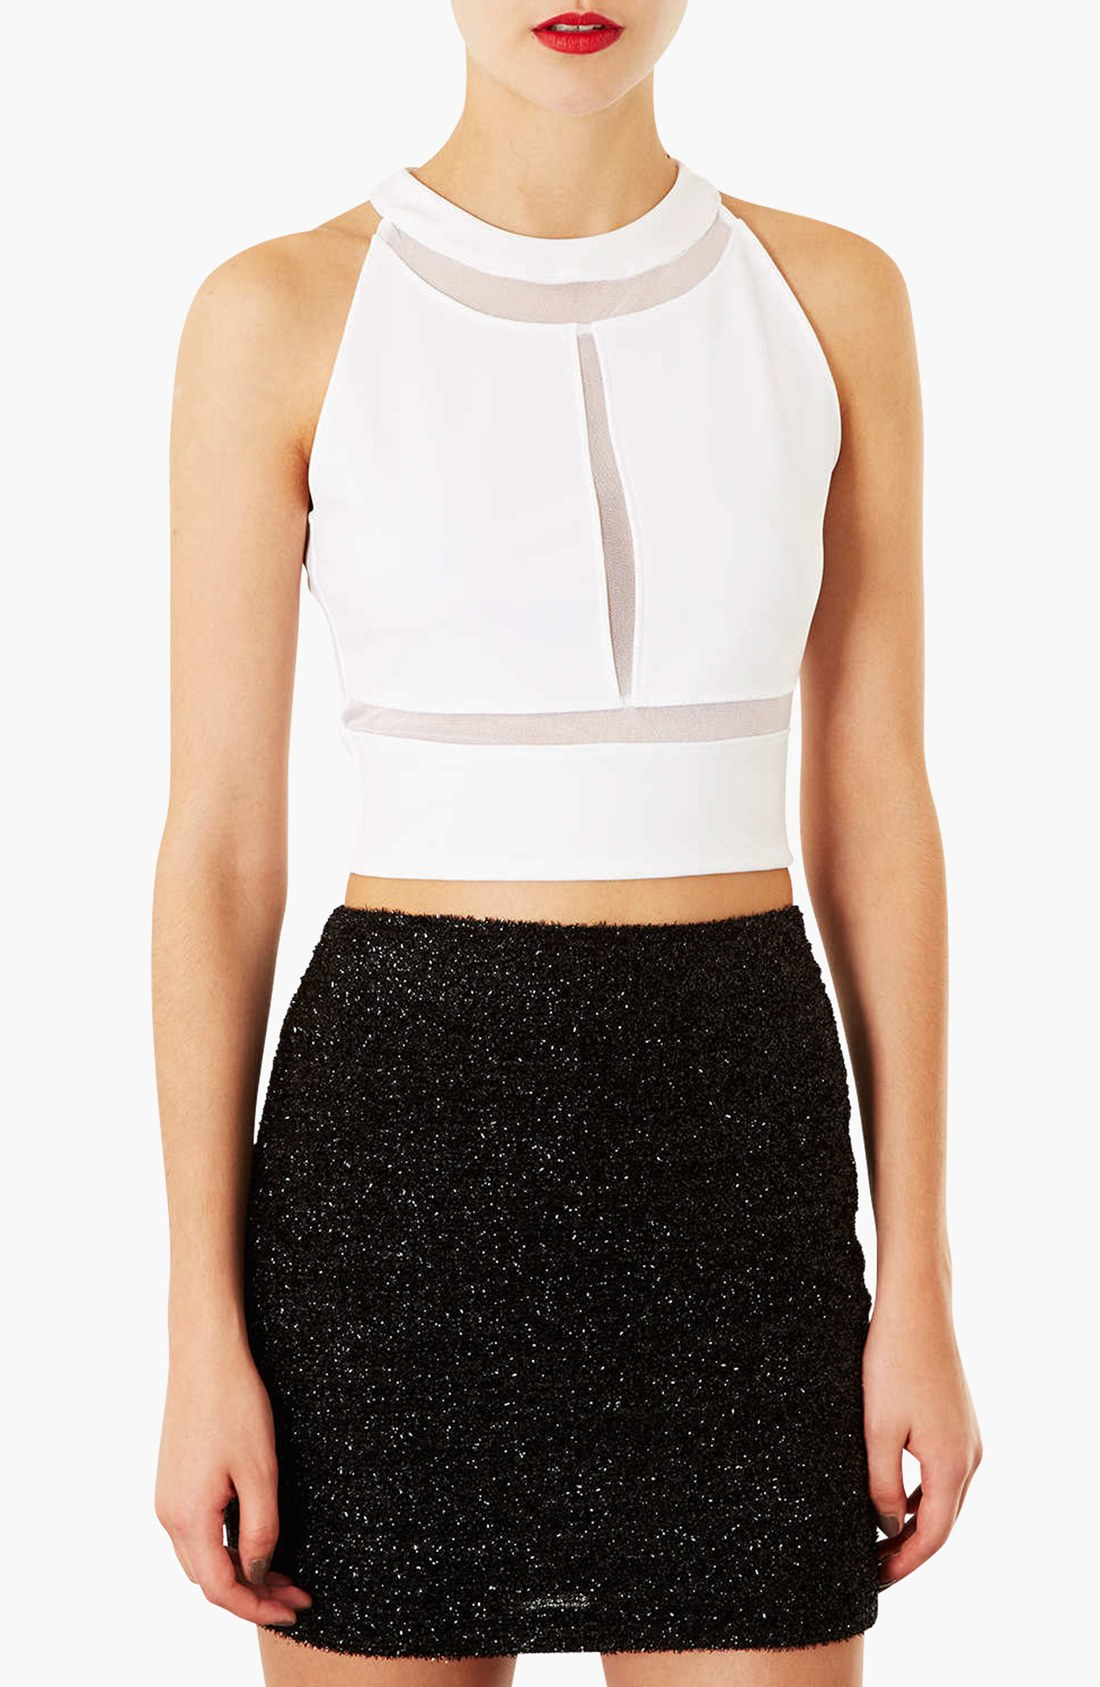 Topshop Mesh Panel Crop Top in White | Lyst - photo#13